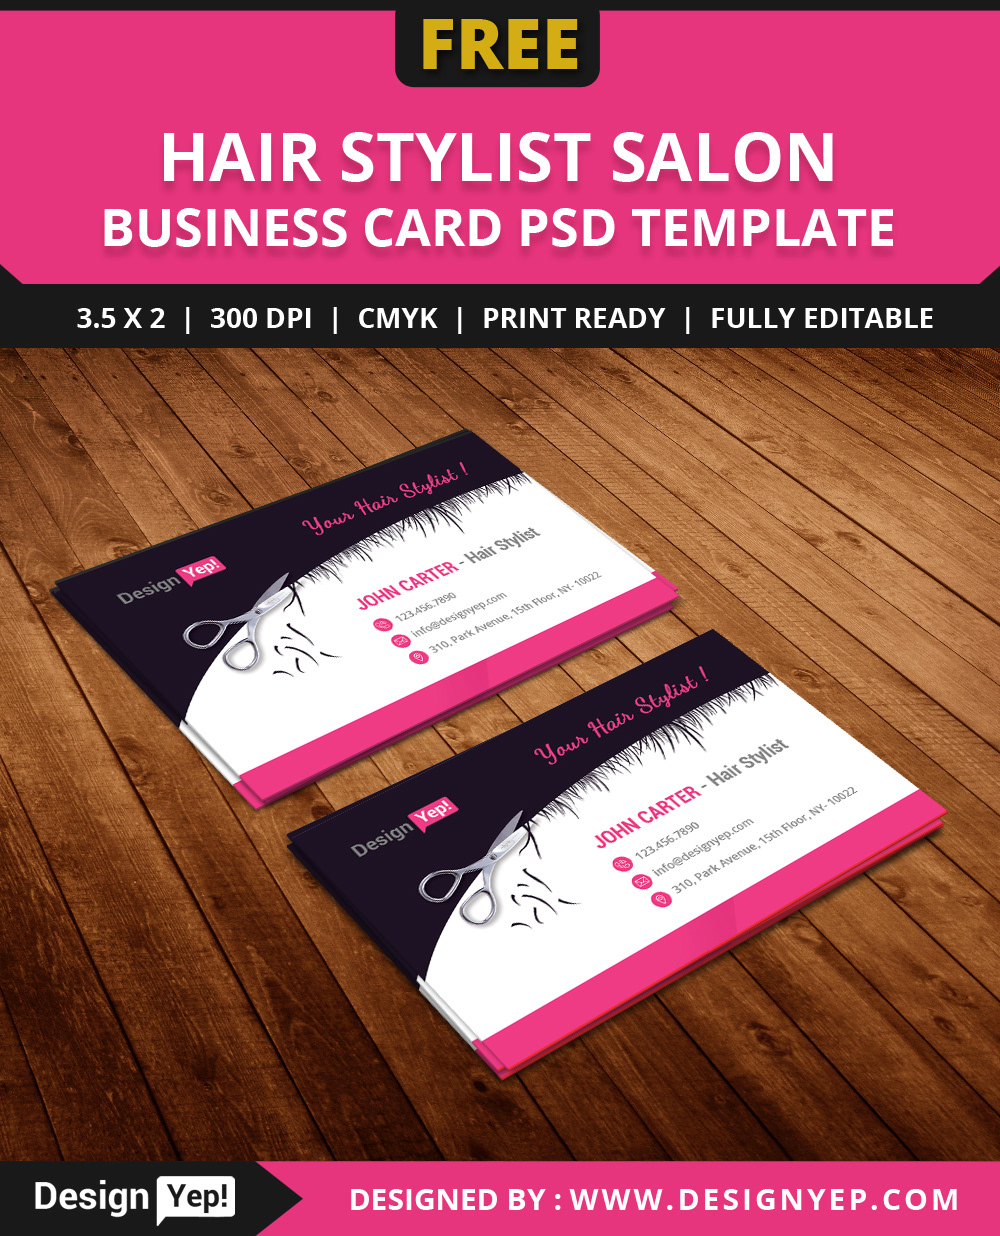 Free hair stylist salon business card template psd on behance wajeb Images